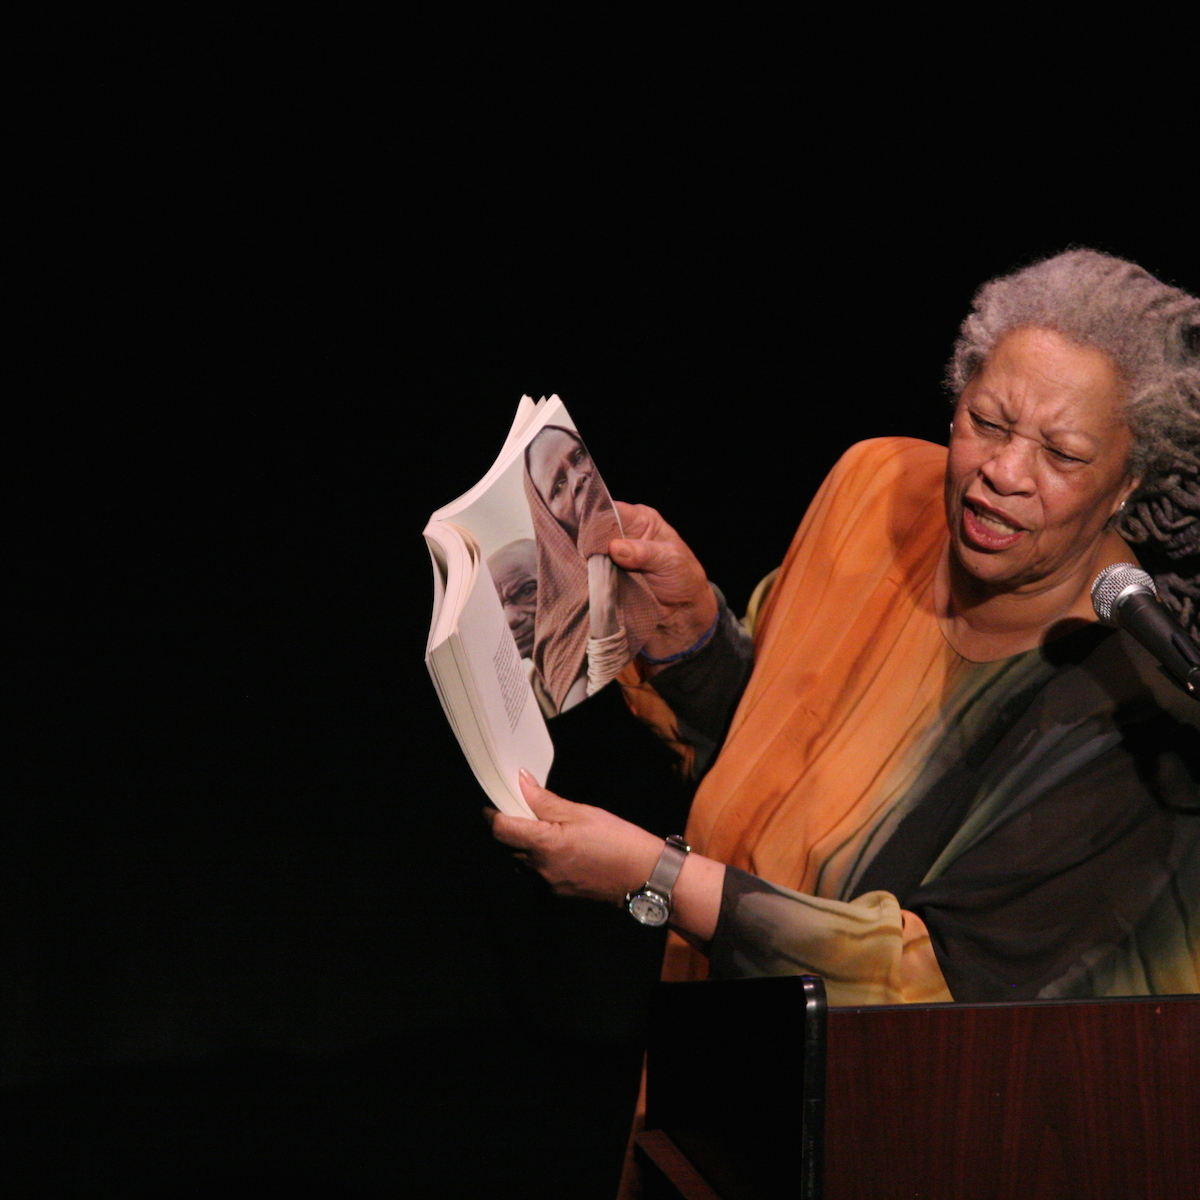 the south in toni morrison Amazon配送商品ならsong of solomonが通常配送無料。更にamazonならポイント還元本が多数。toni morrison  macon goes home to the south,.